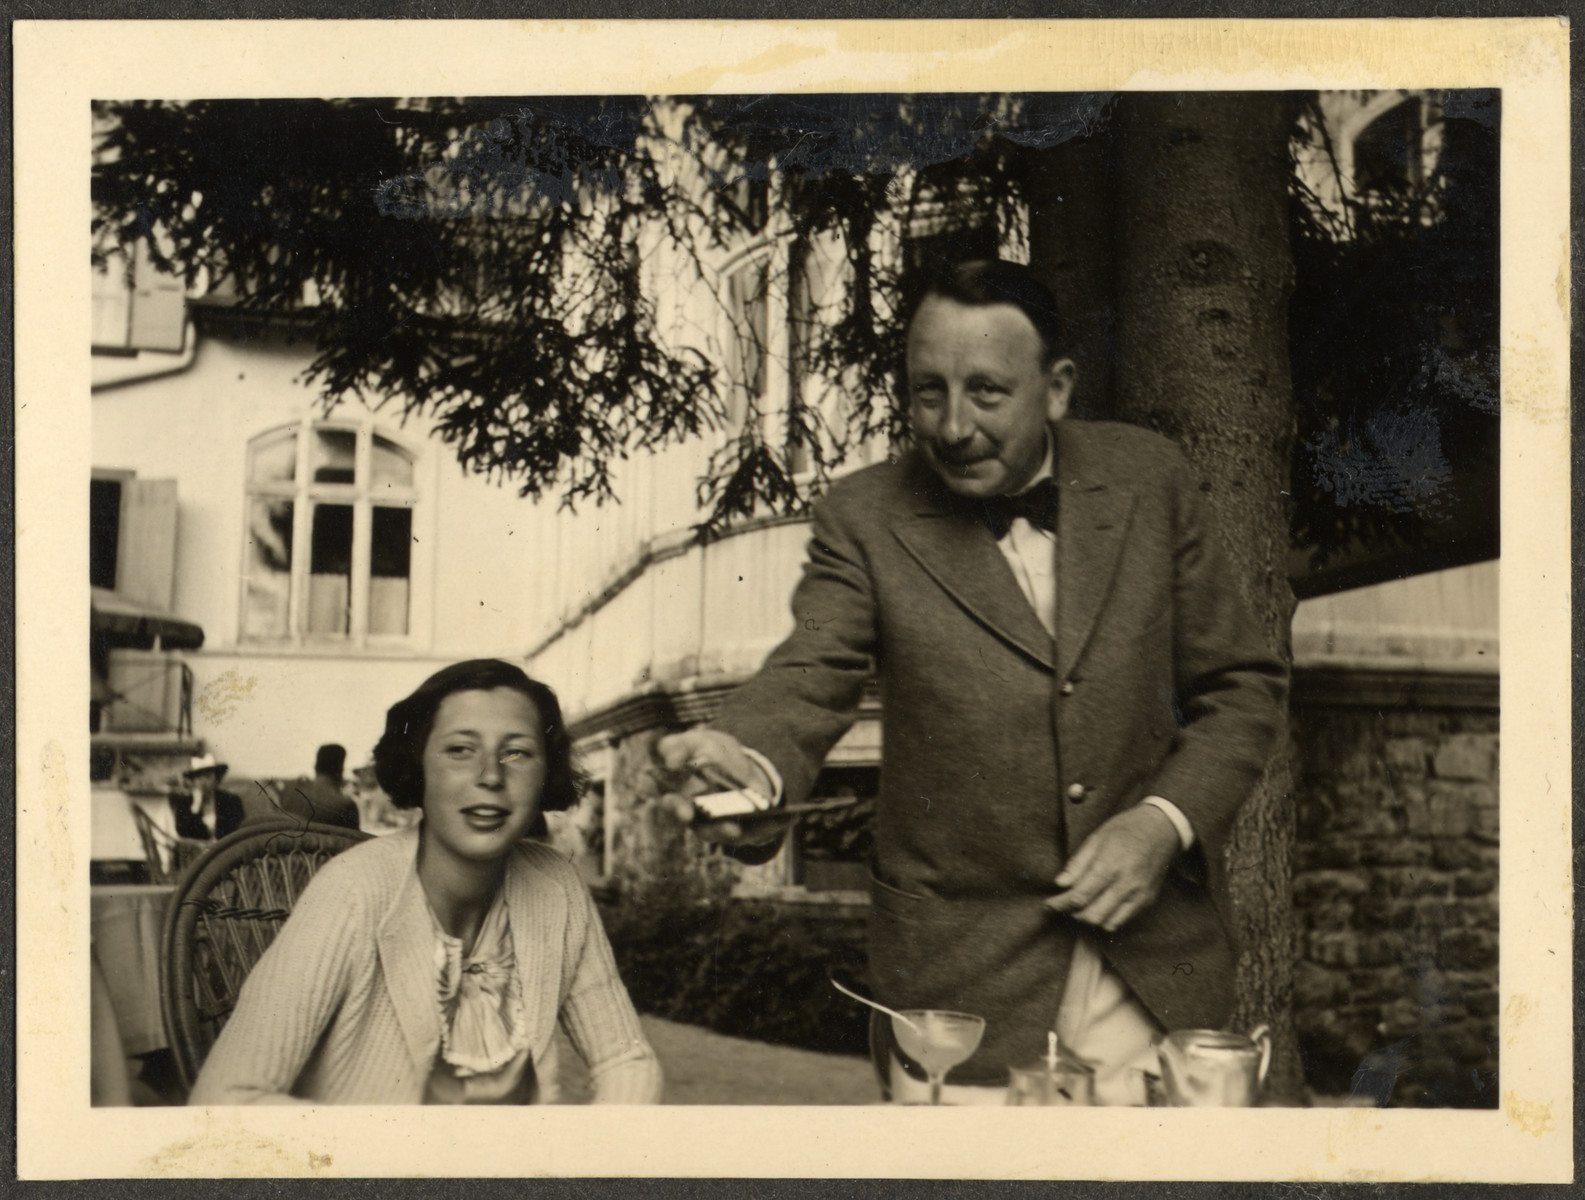 Annelise Bing and her father Ernest enjoy a snack on an outdoor terrace.